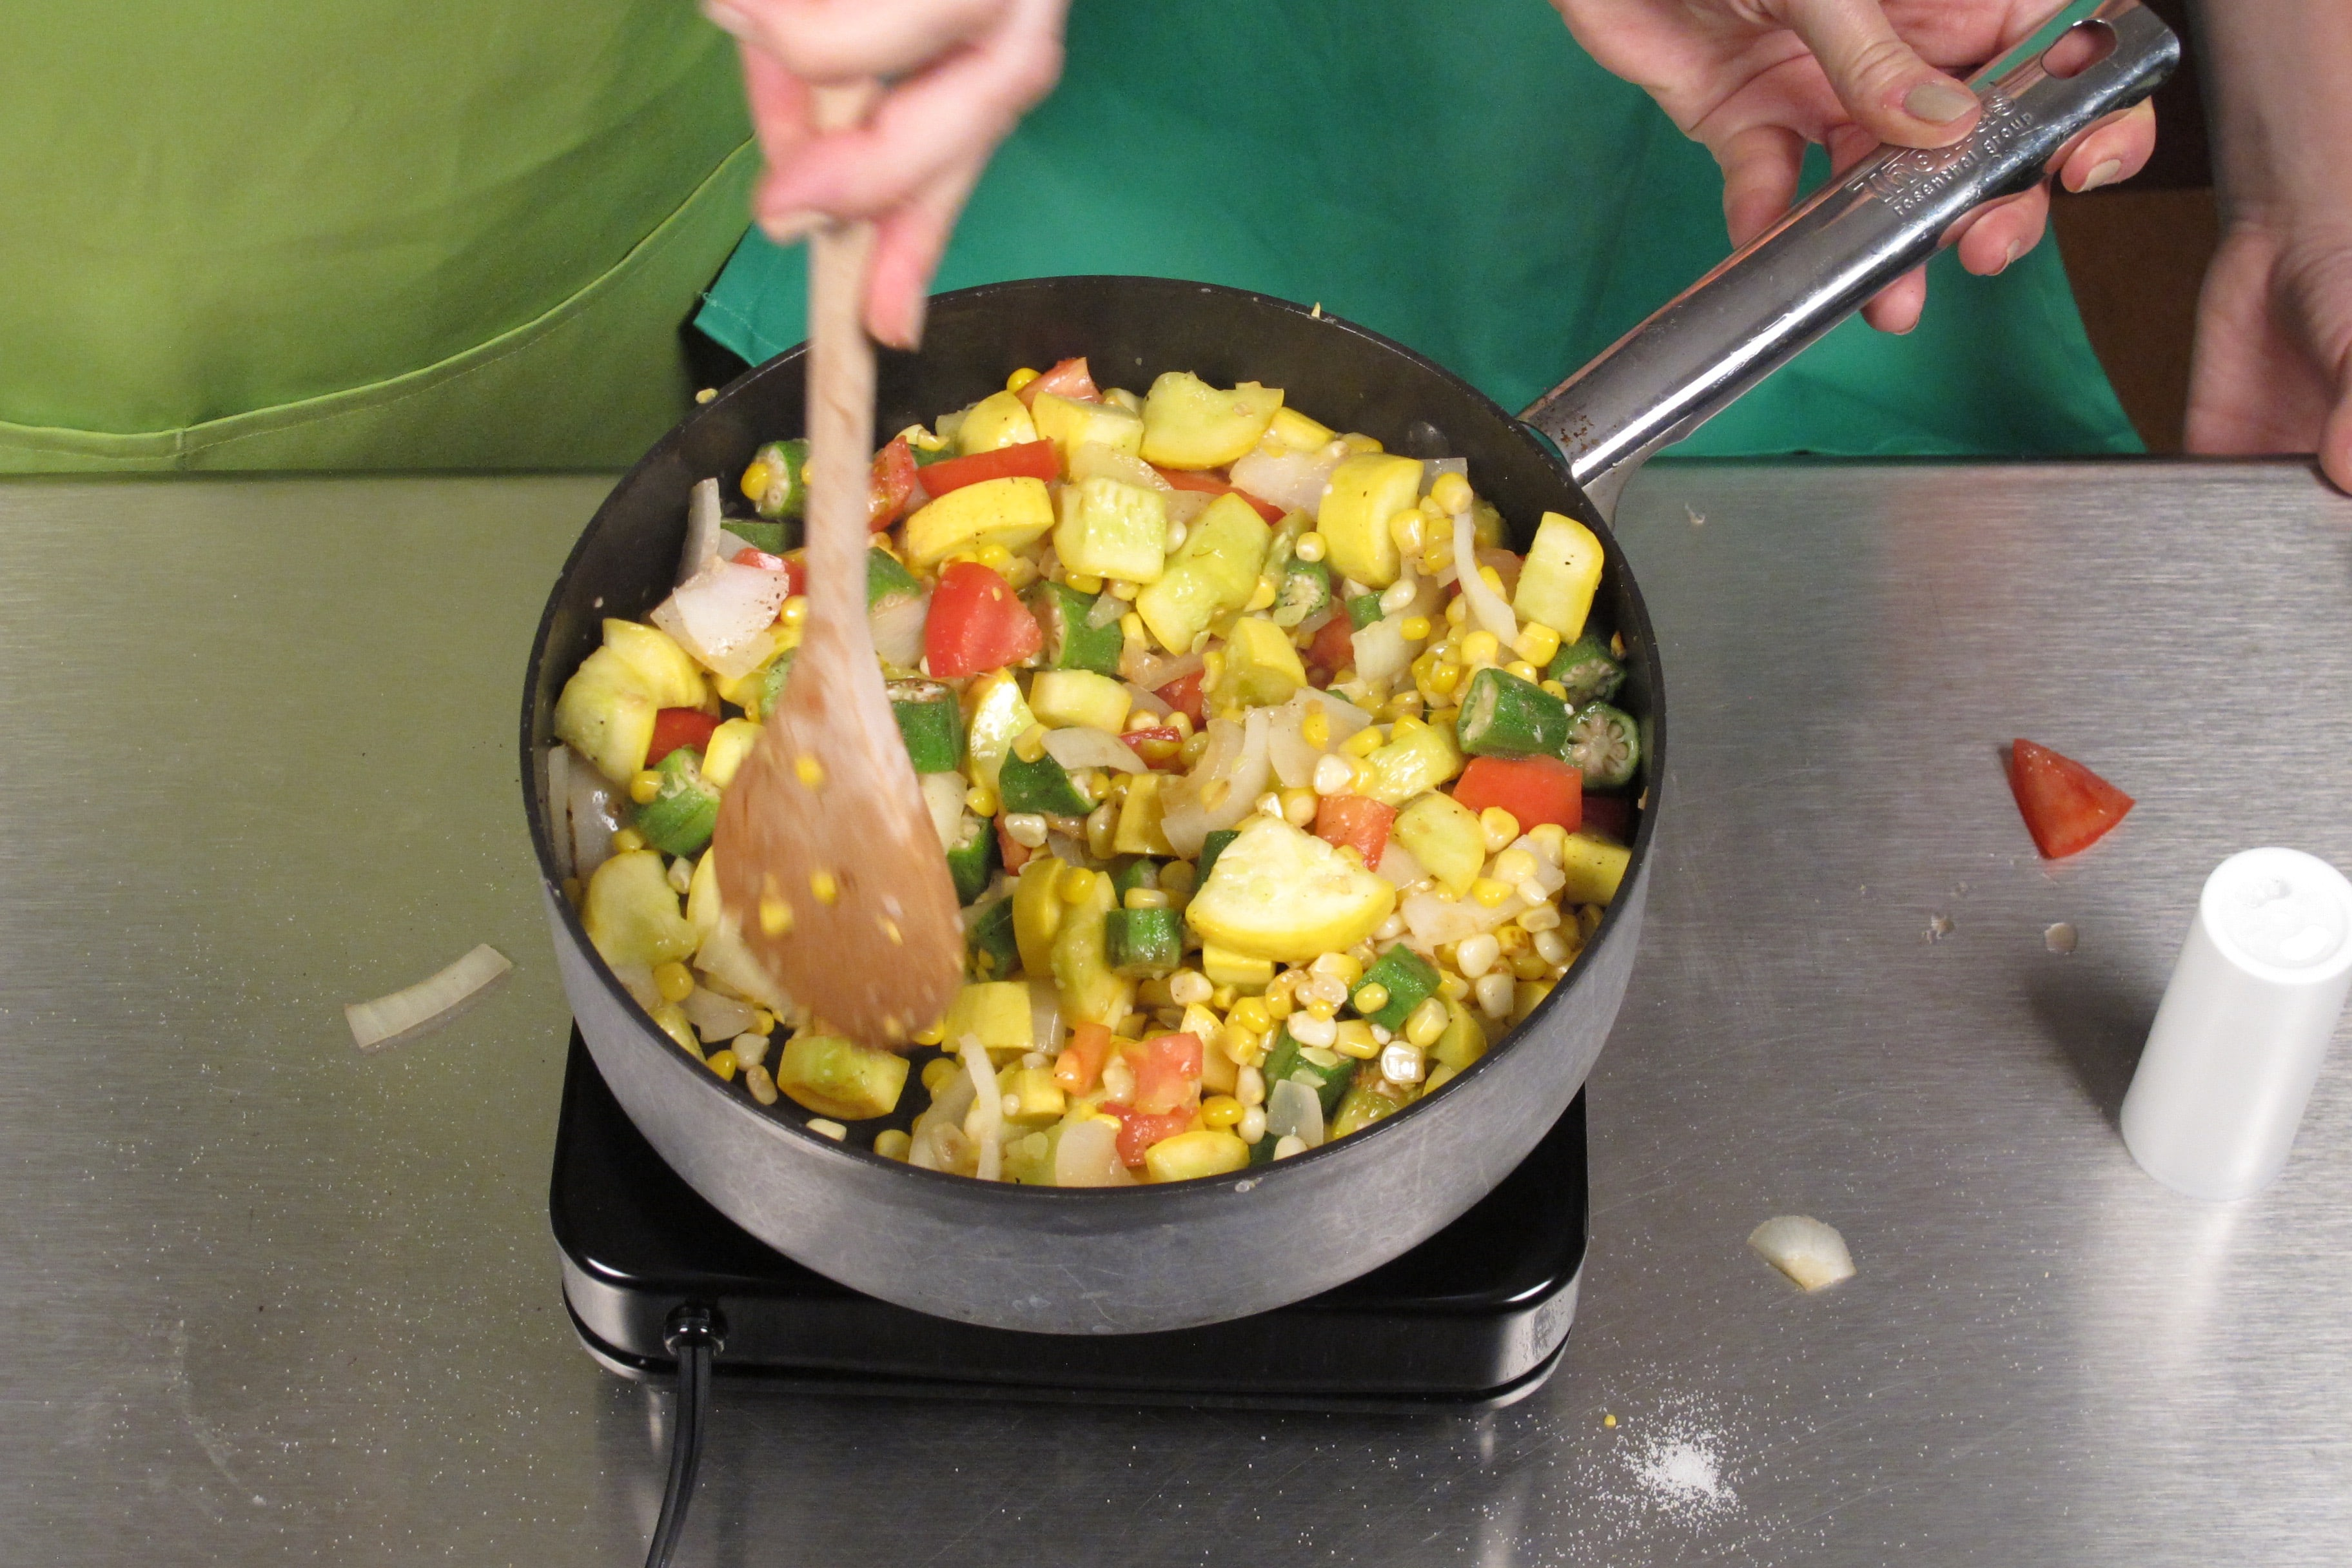 In a large skillet over medium heat, cook oil, onion, corn, squash, and okra for 5 minutes.